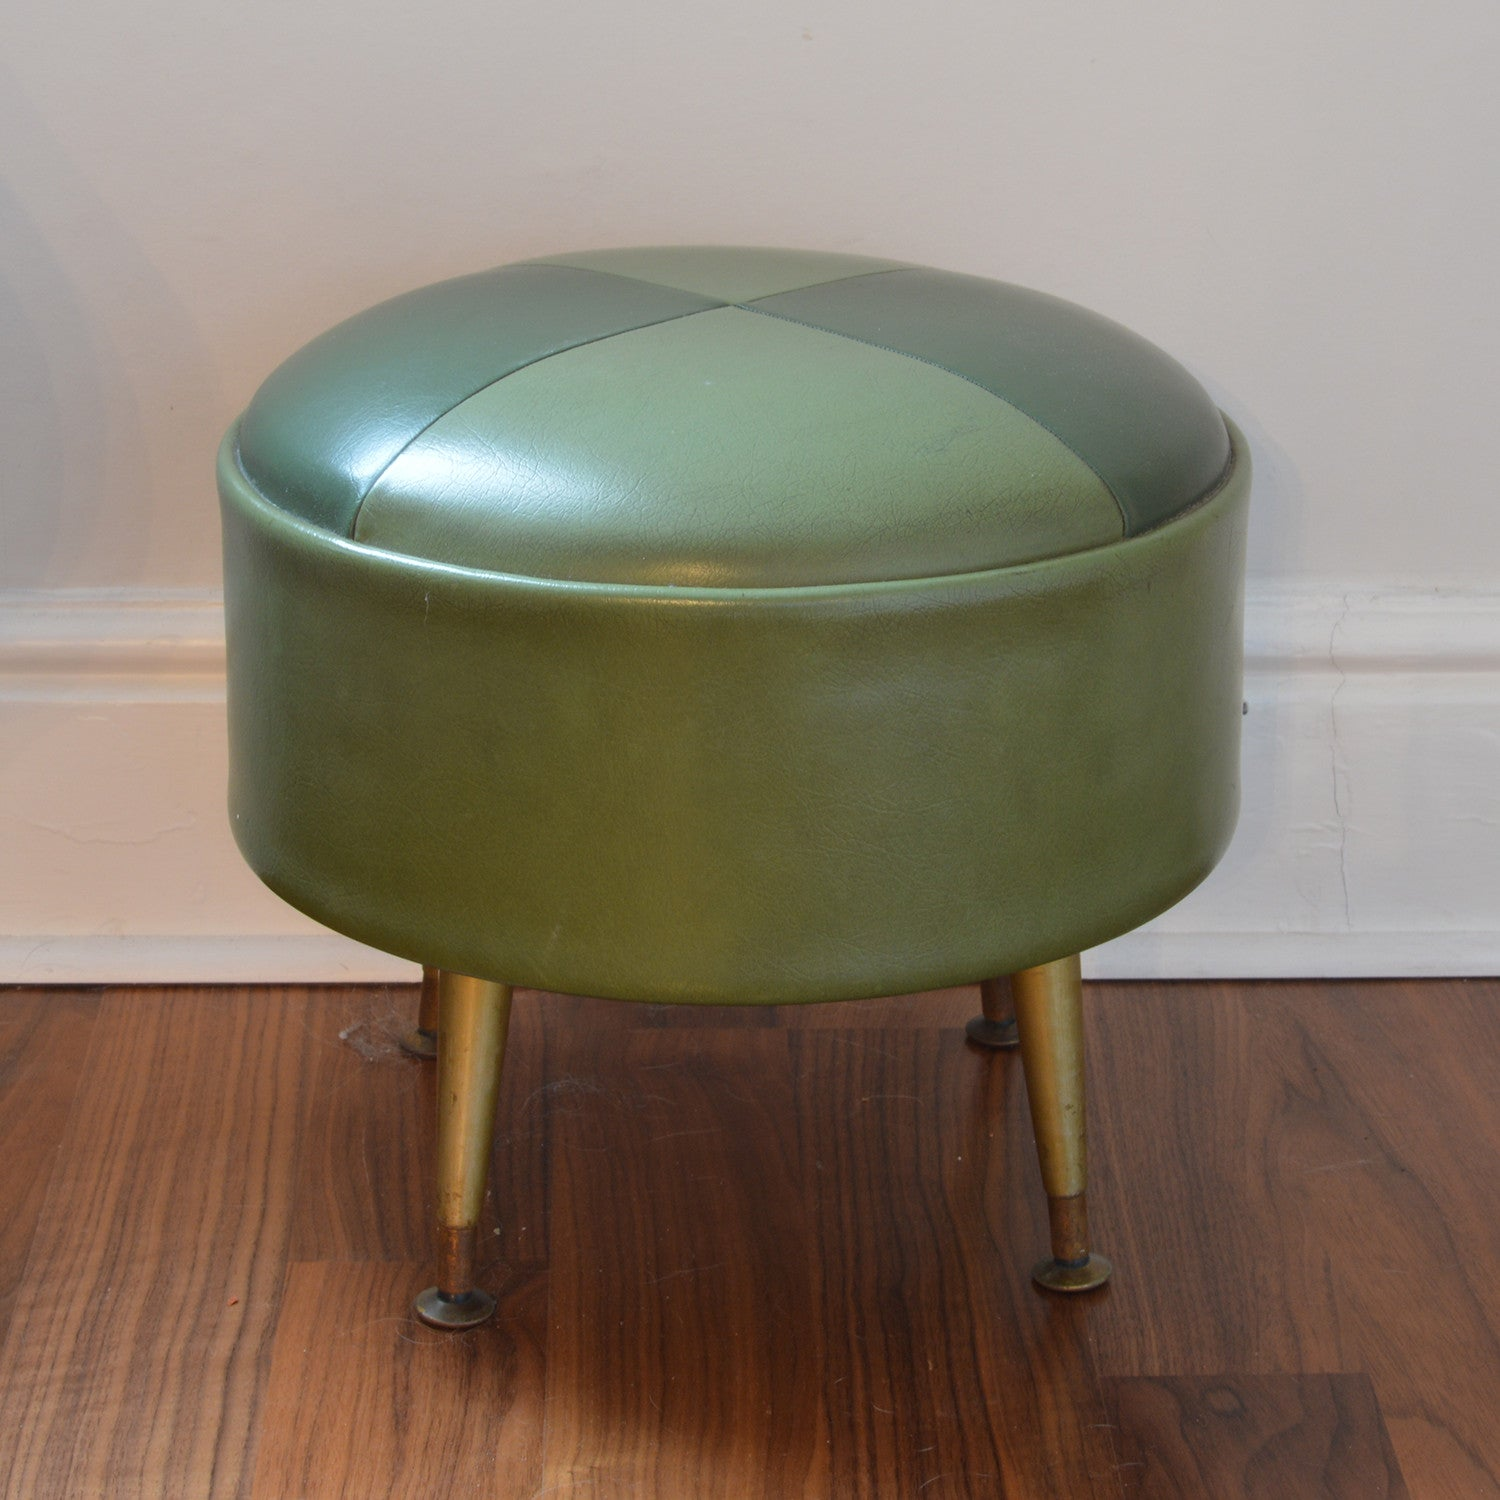 Stupendous Green Leather Vintage Foot Stool Squirreltailoven Fun Painted Chair Ideas Images Squirreltailovenorg